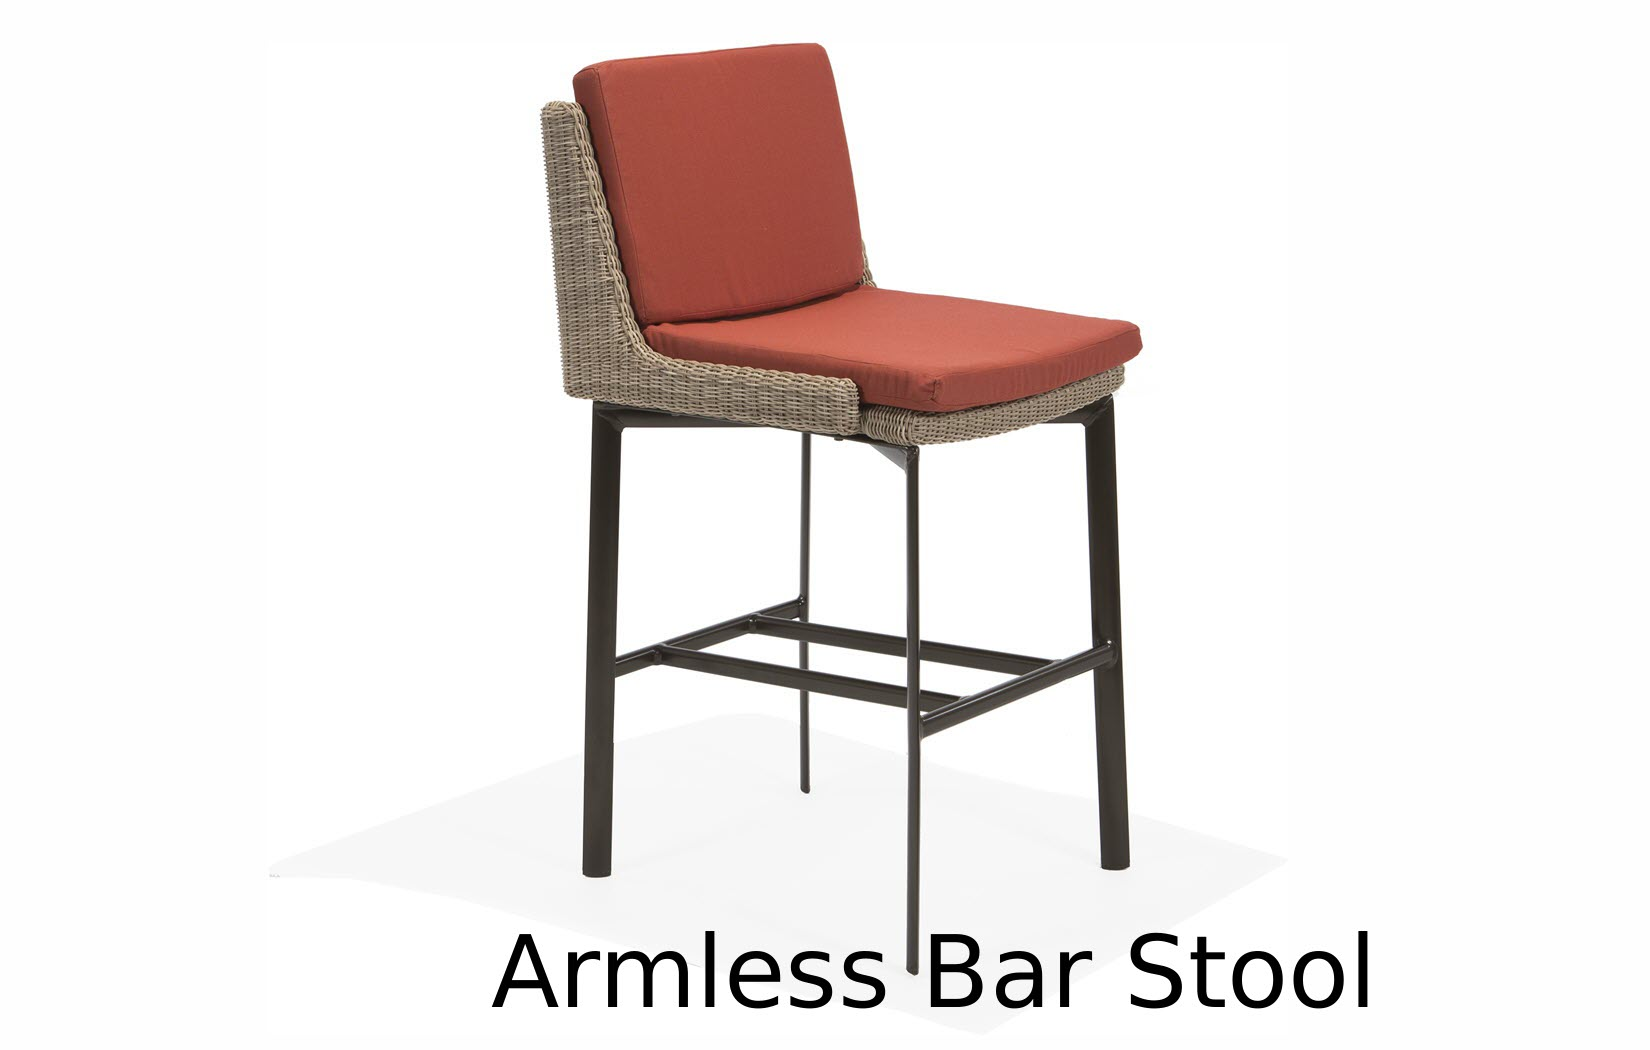 Couer d'Alene Collection Arless Bar stool